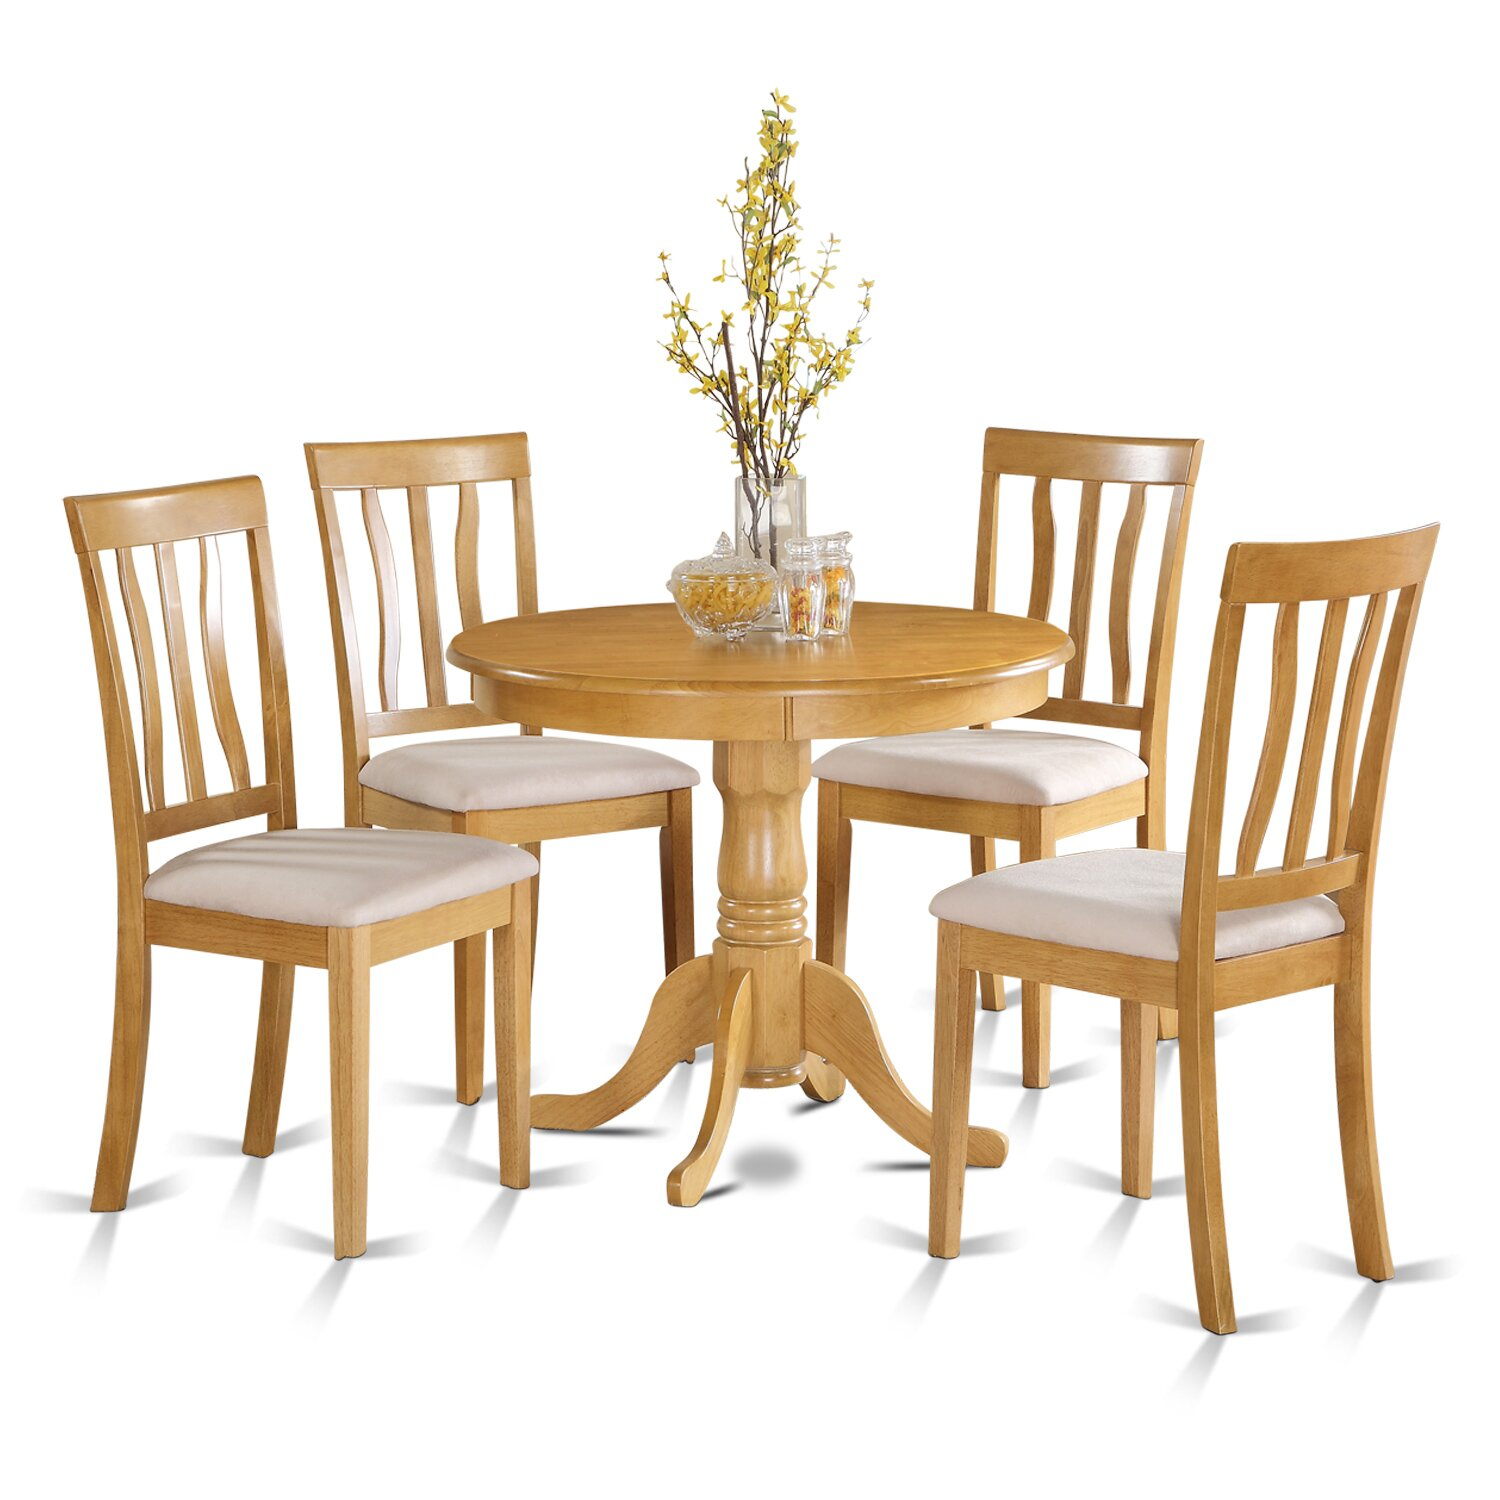 Wooden importers 5 piece dining set reviews wayfair for 4 piece dining table set